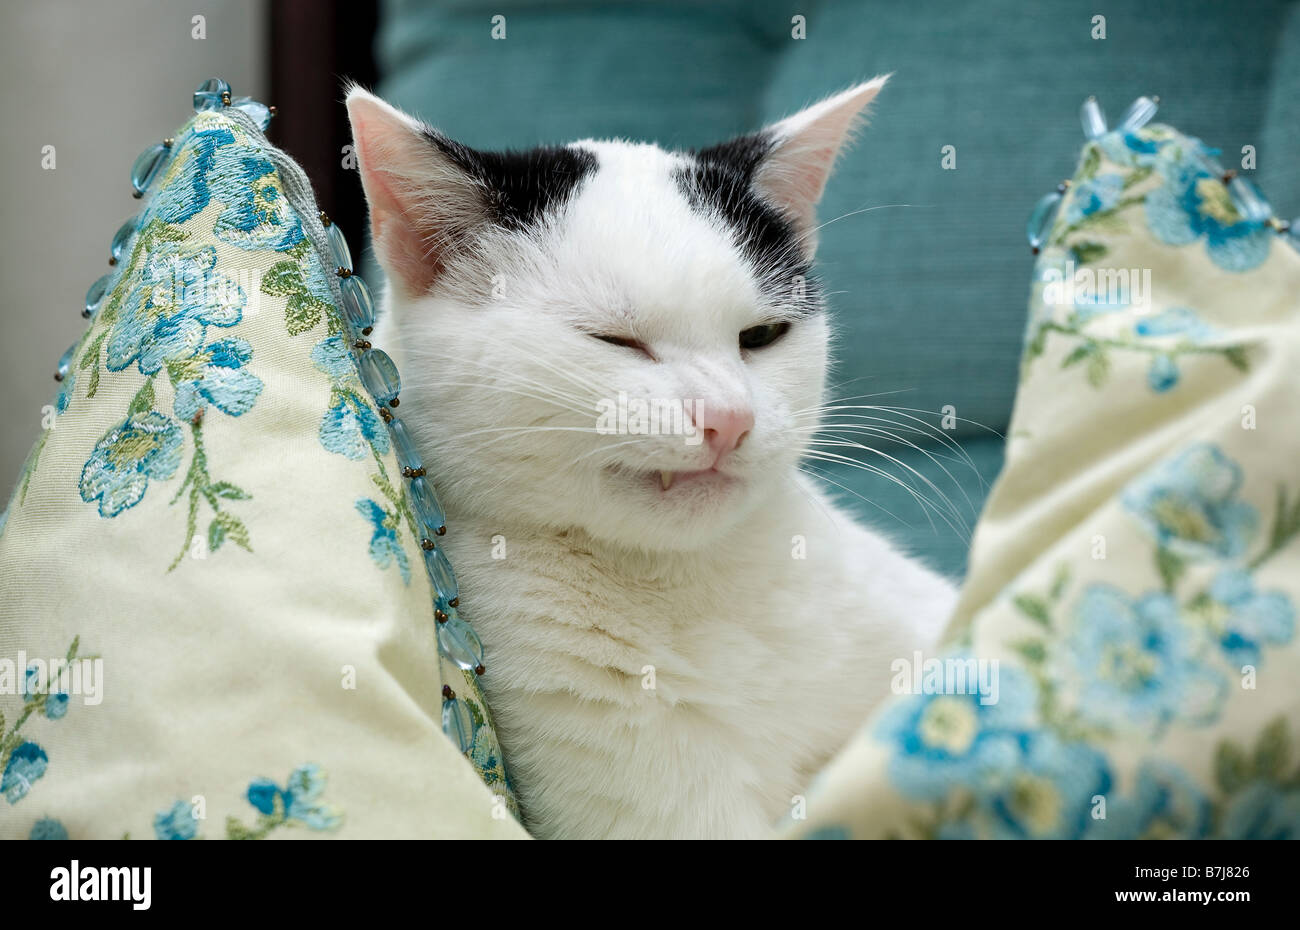 Young cat sitting on cushion with screwed up facial expression - Stock Image